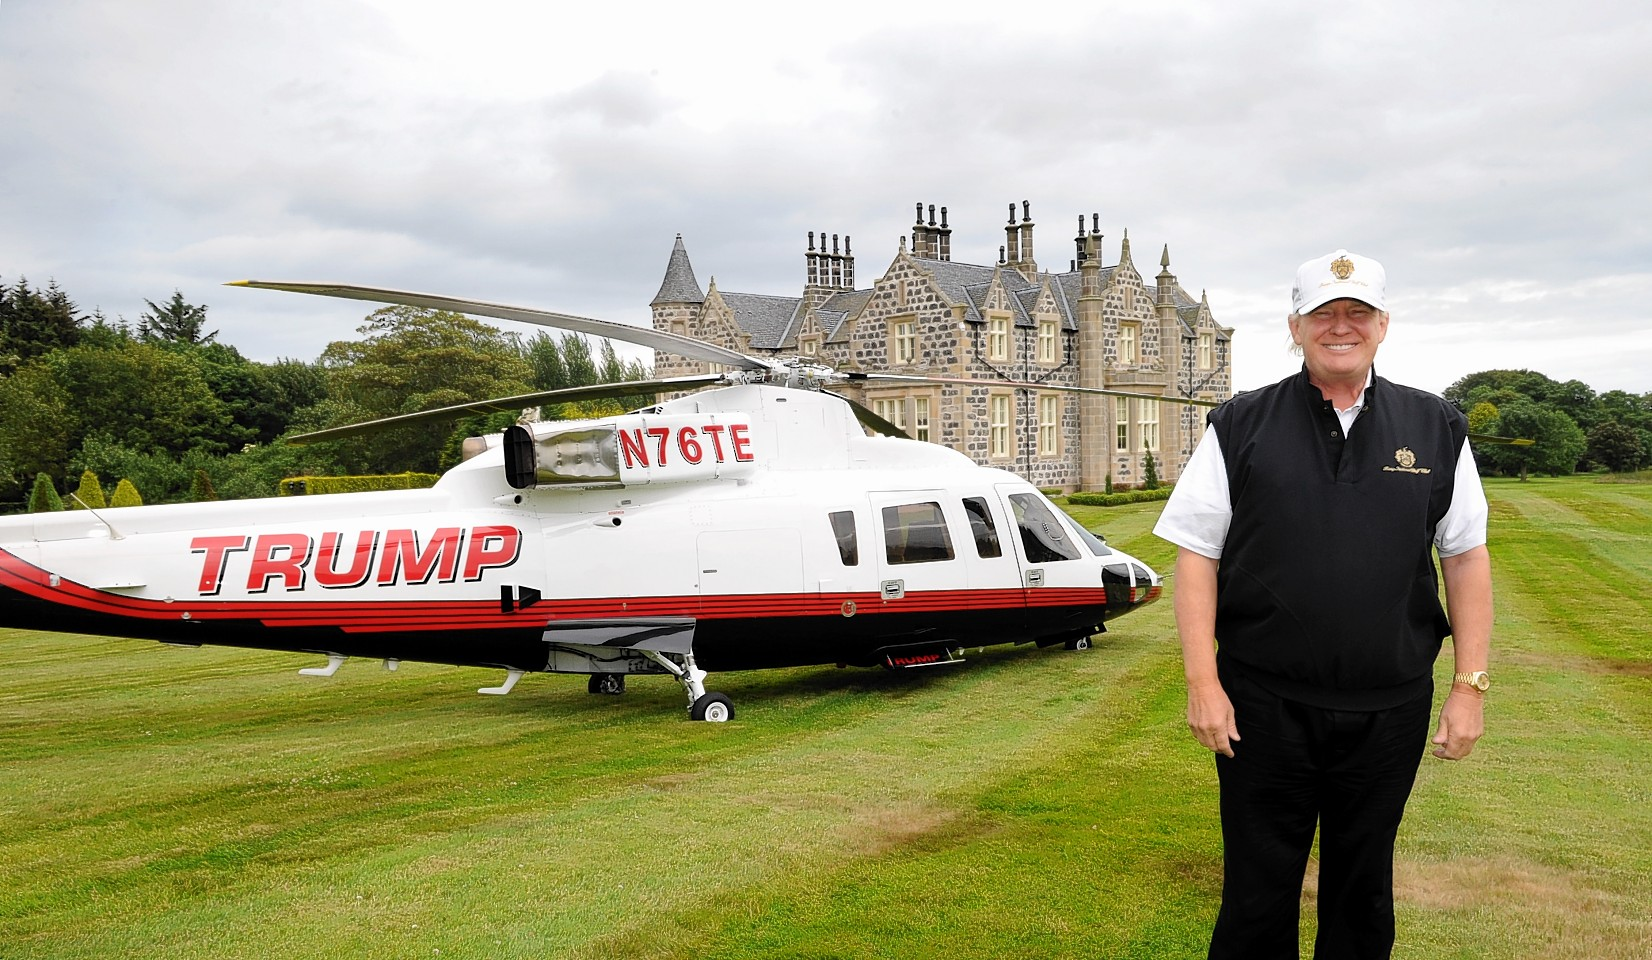 Donald Trump with his new helicopter at Trump International Golf Links, Aberdeen. Picture by KEVIN EMSLIE